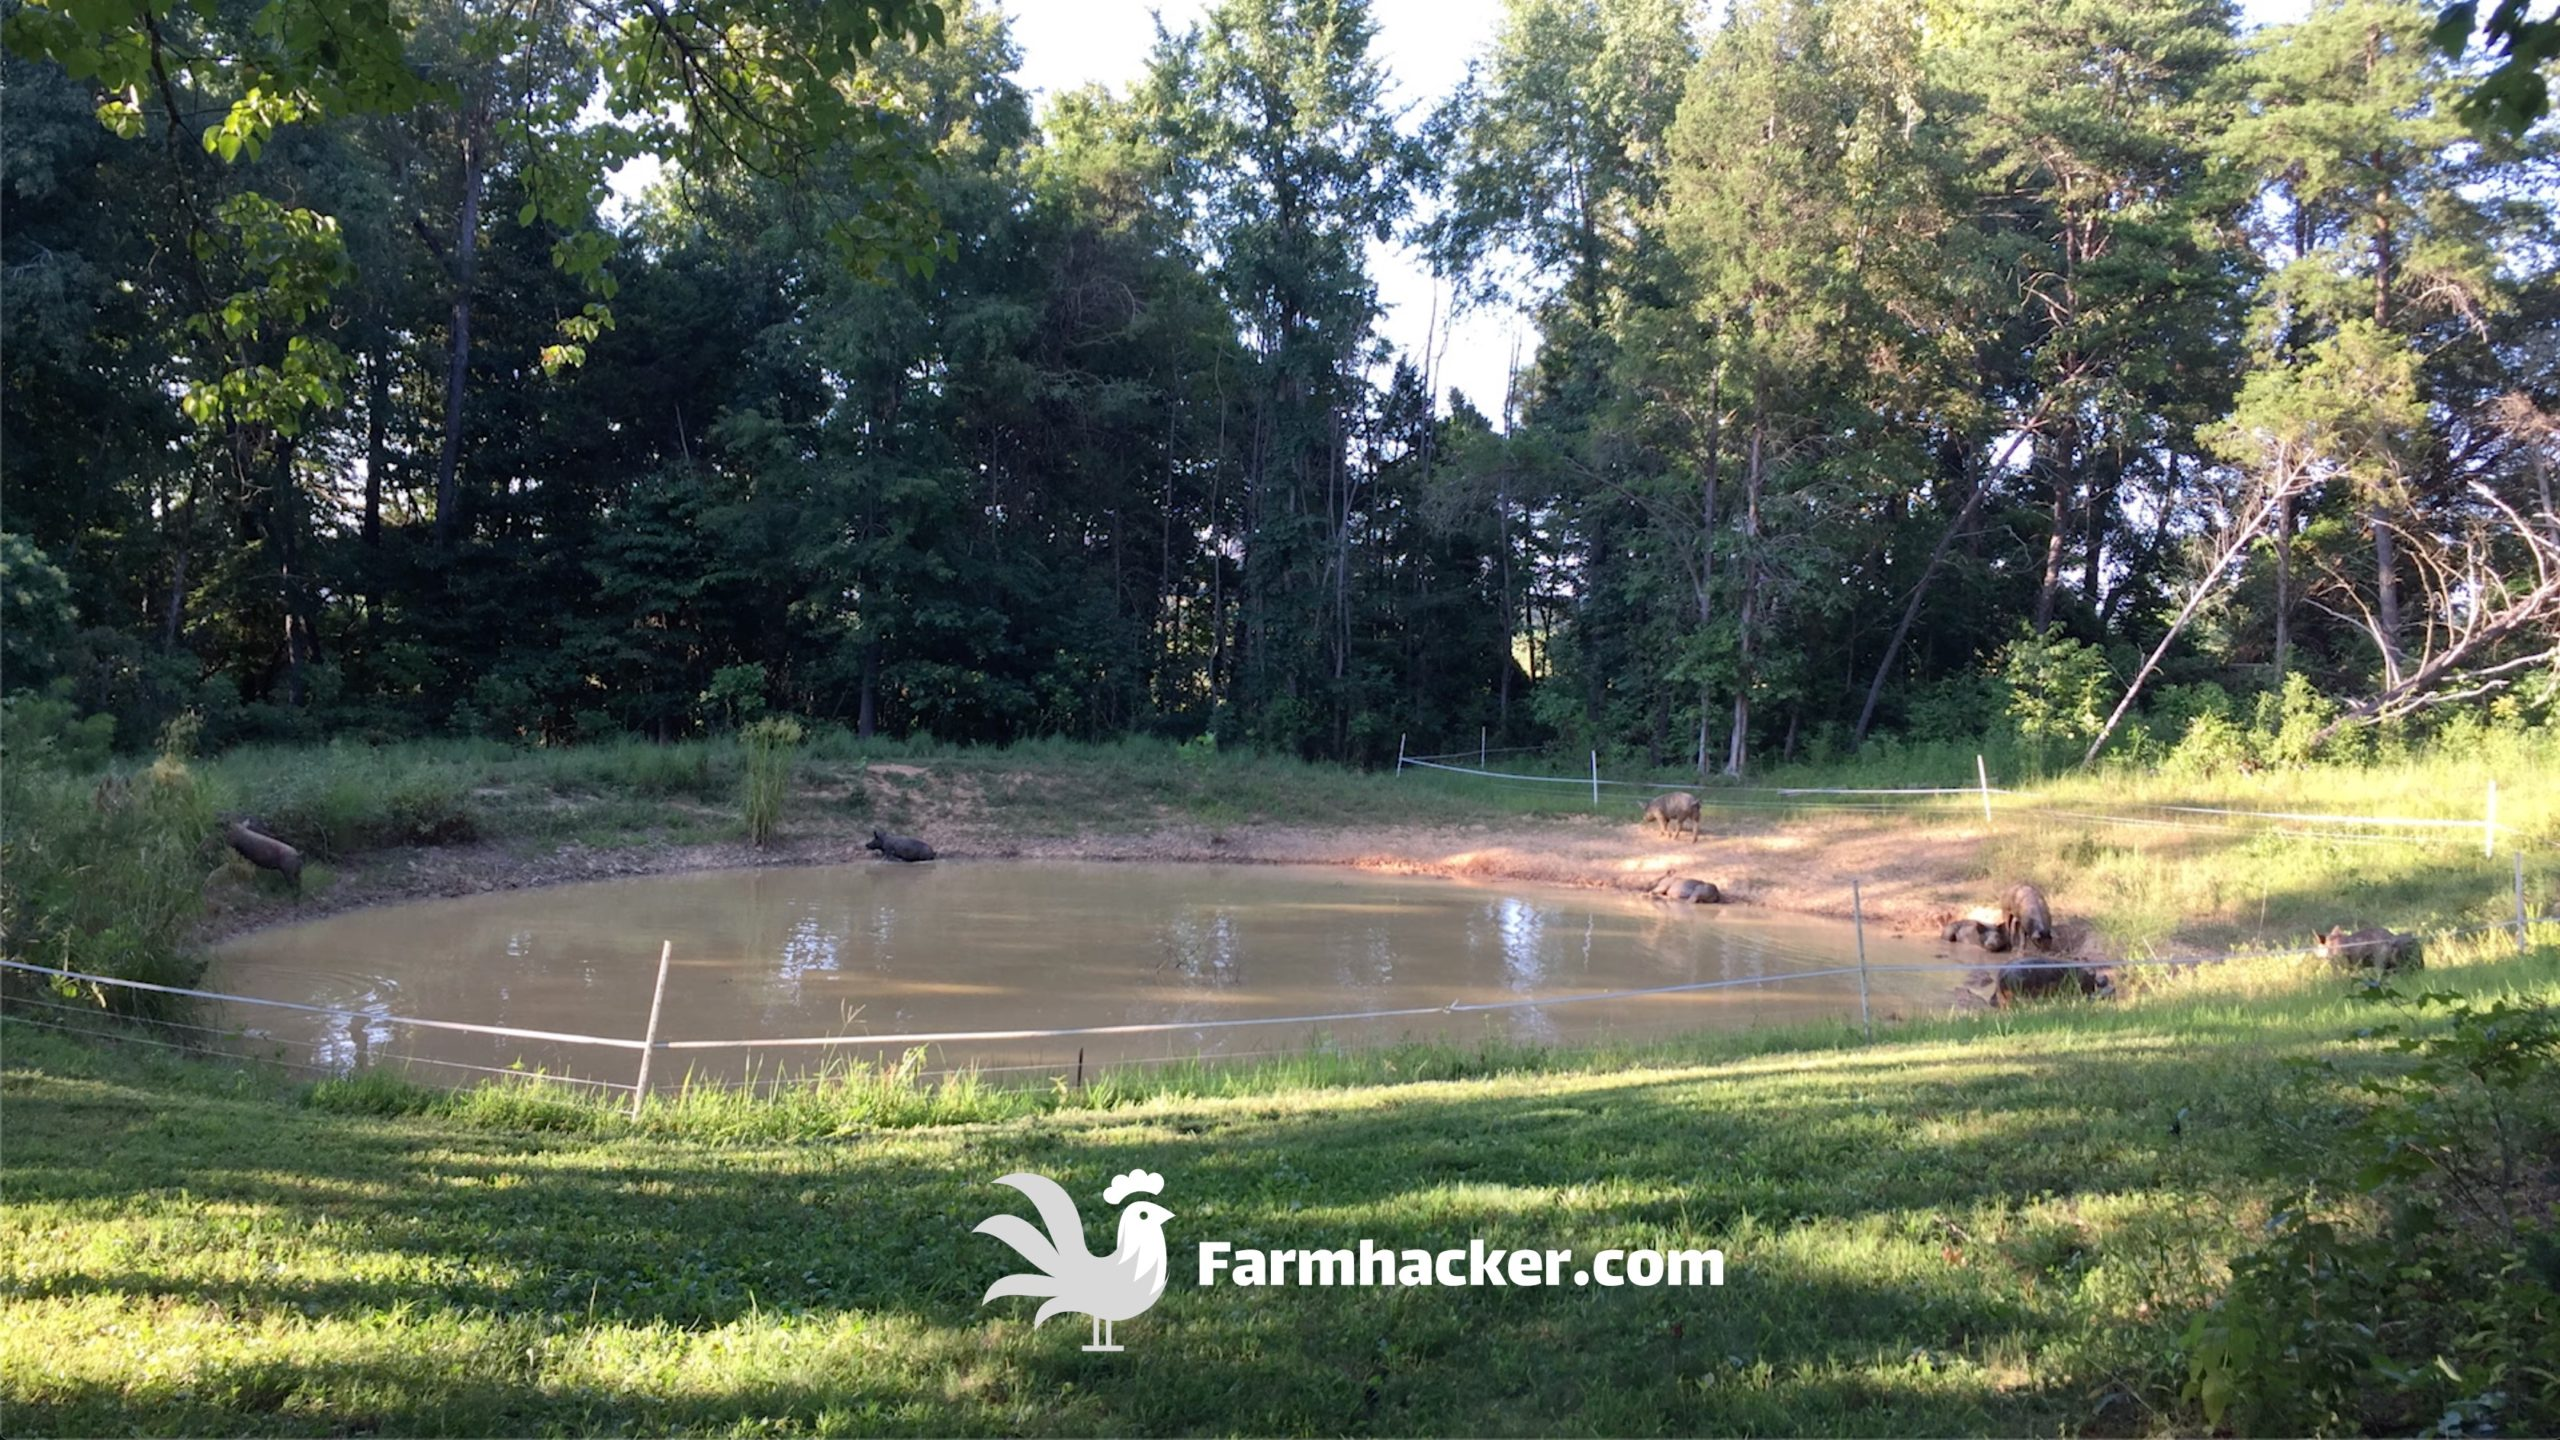 Polywire Fence Around the Pond to Keep the Pigs in - How to Seal a Pond Naturally With Pigs